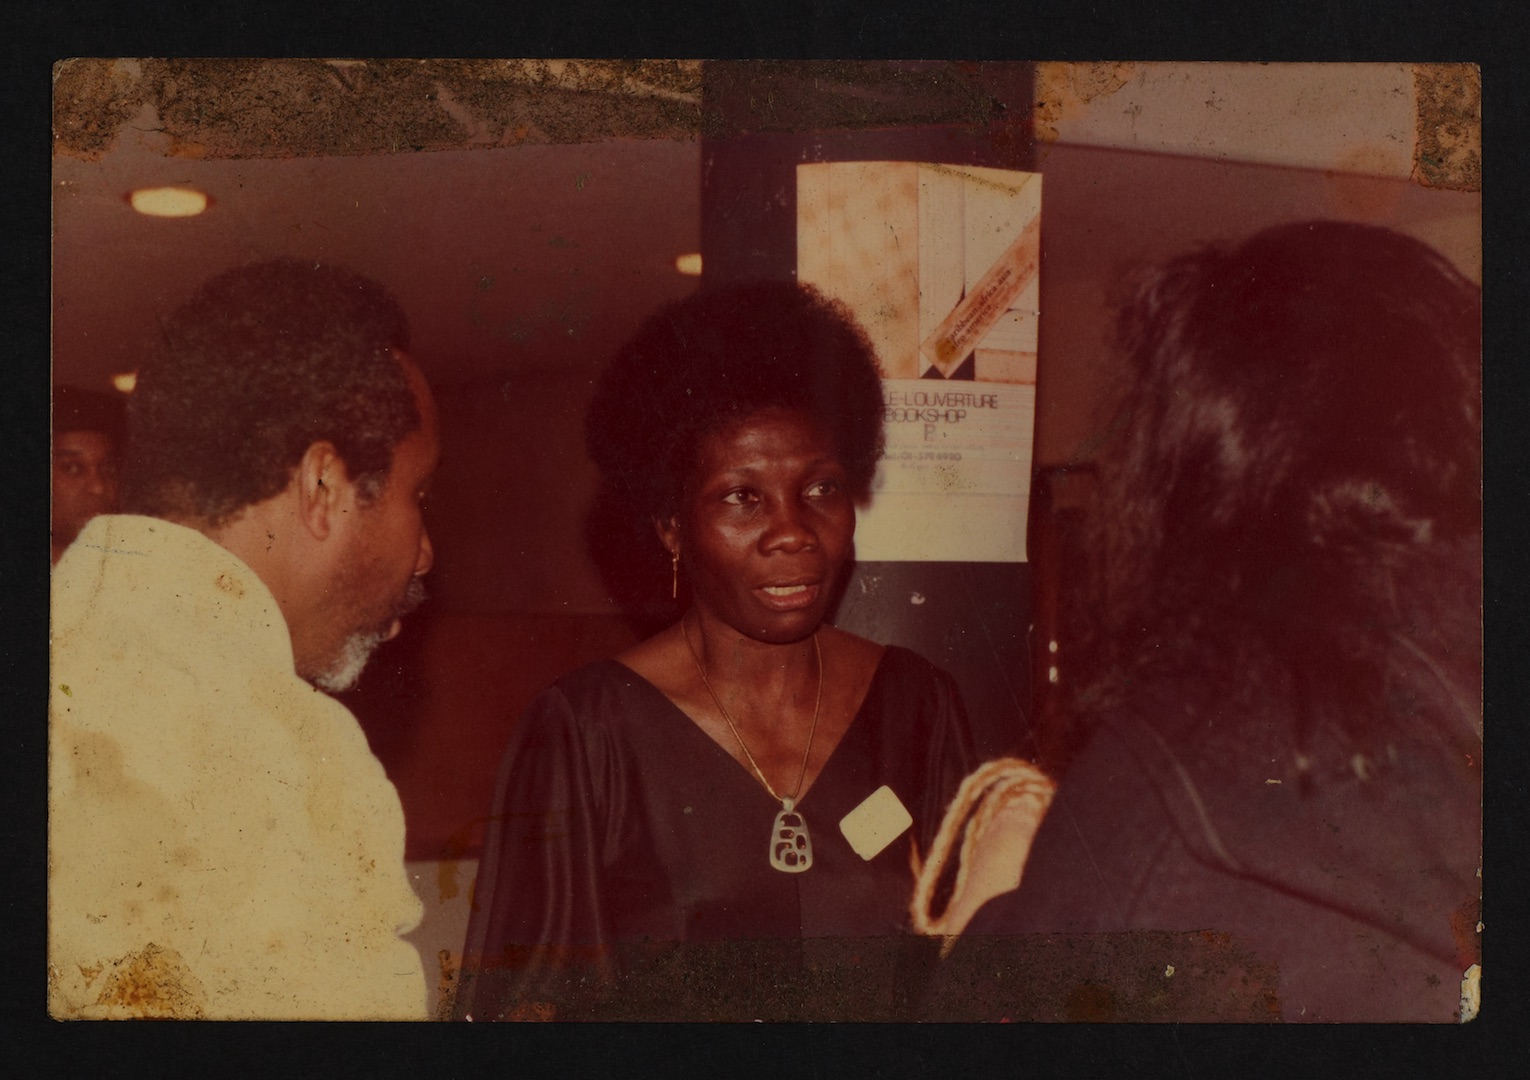 02 L to R - Eric Huntley _ Jessica Huntley at Bogle-L'Ouverture Publications event. c1970. Huntley A